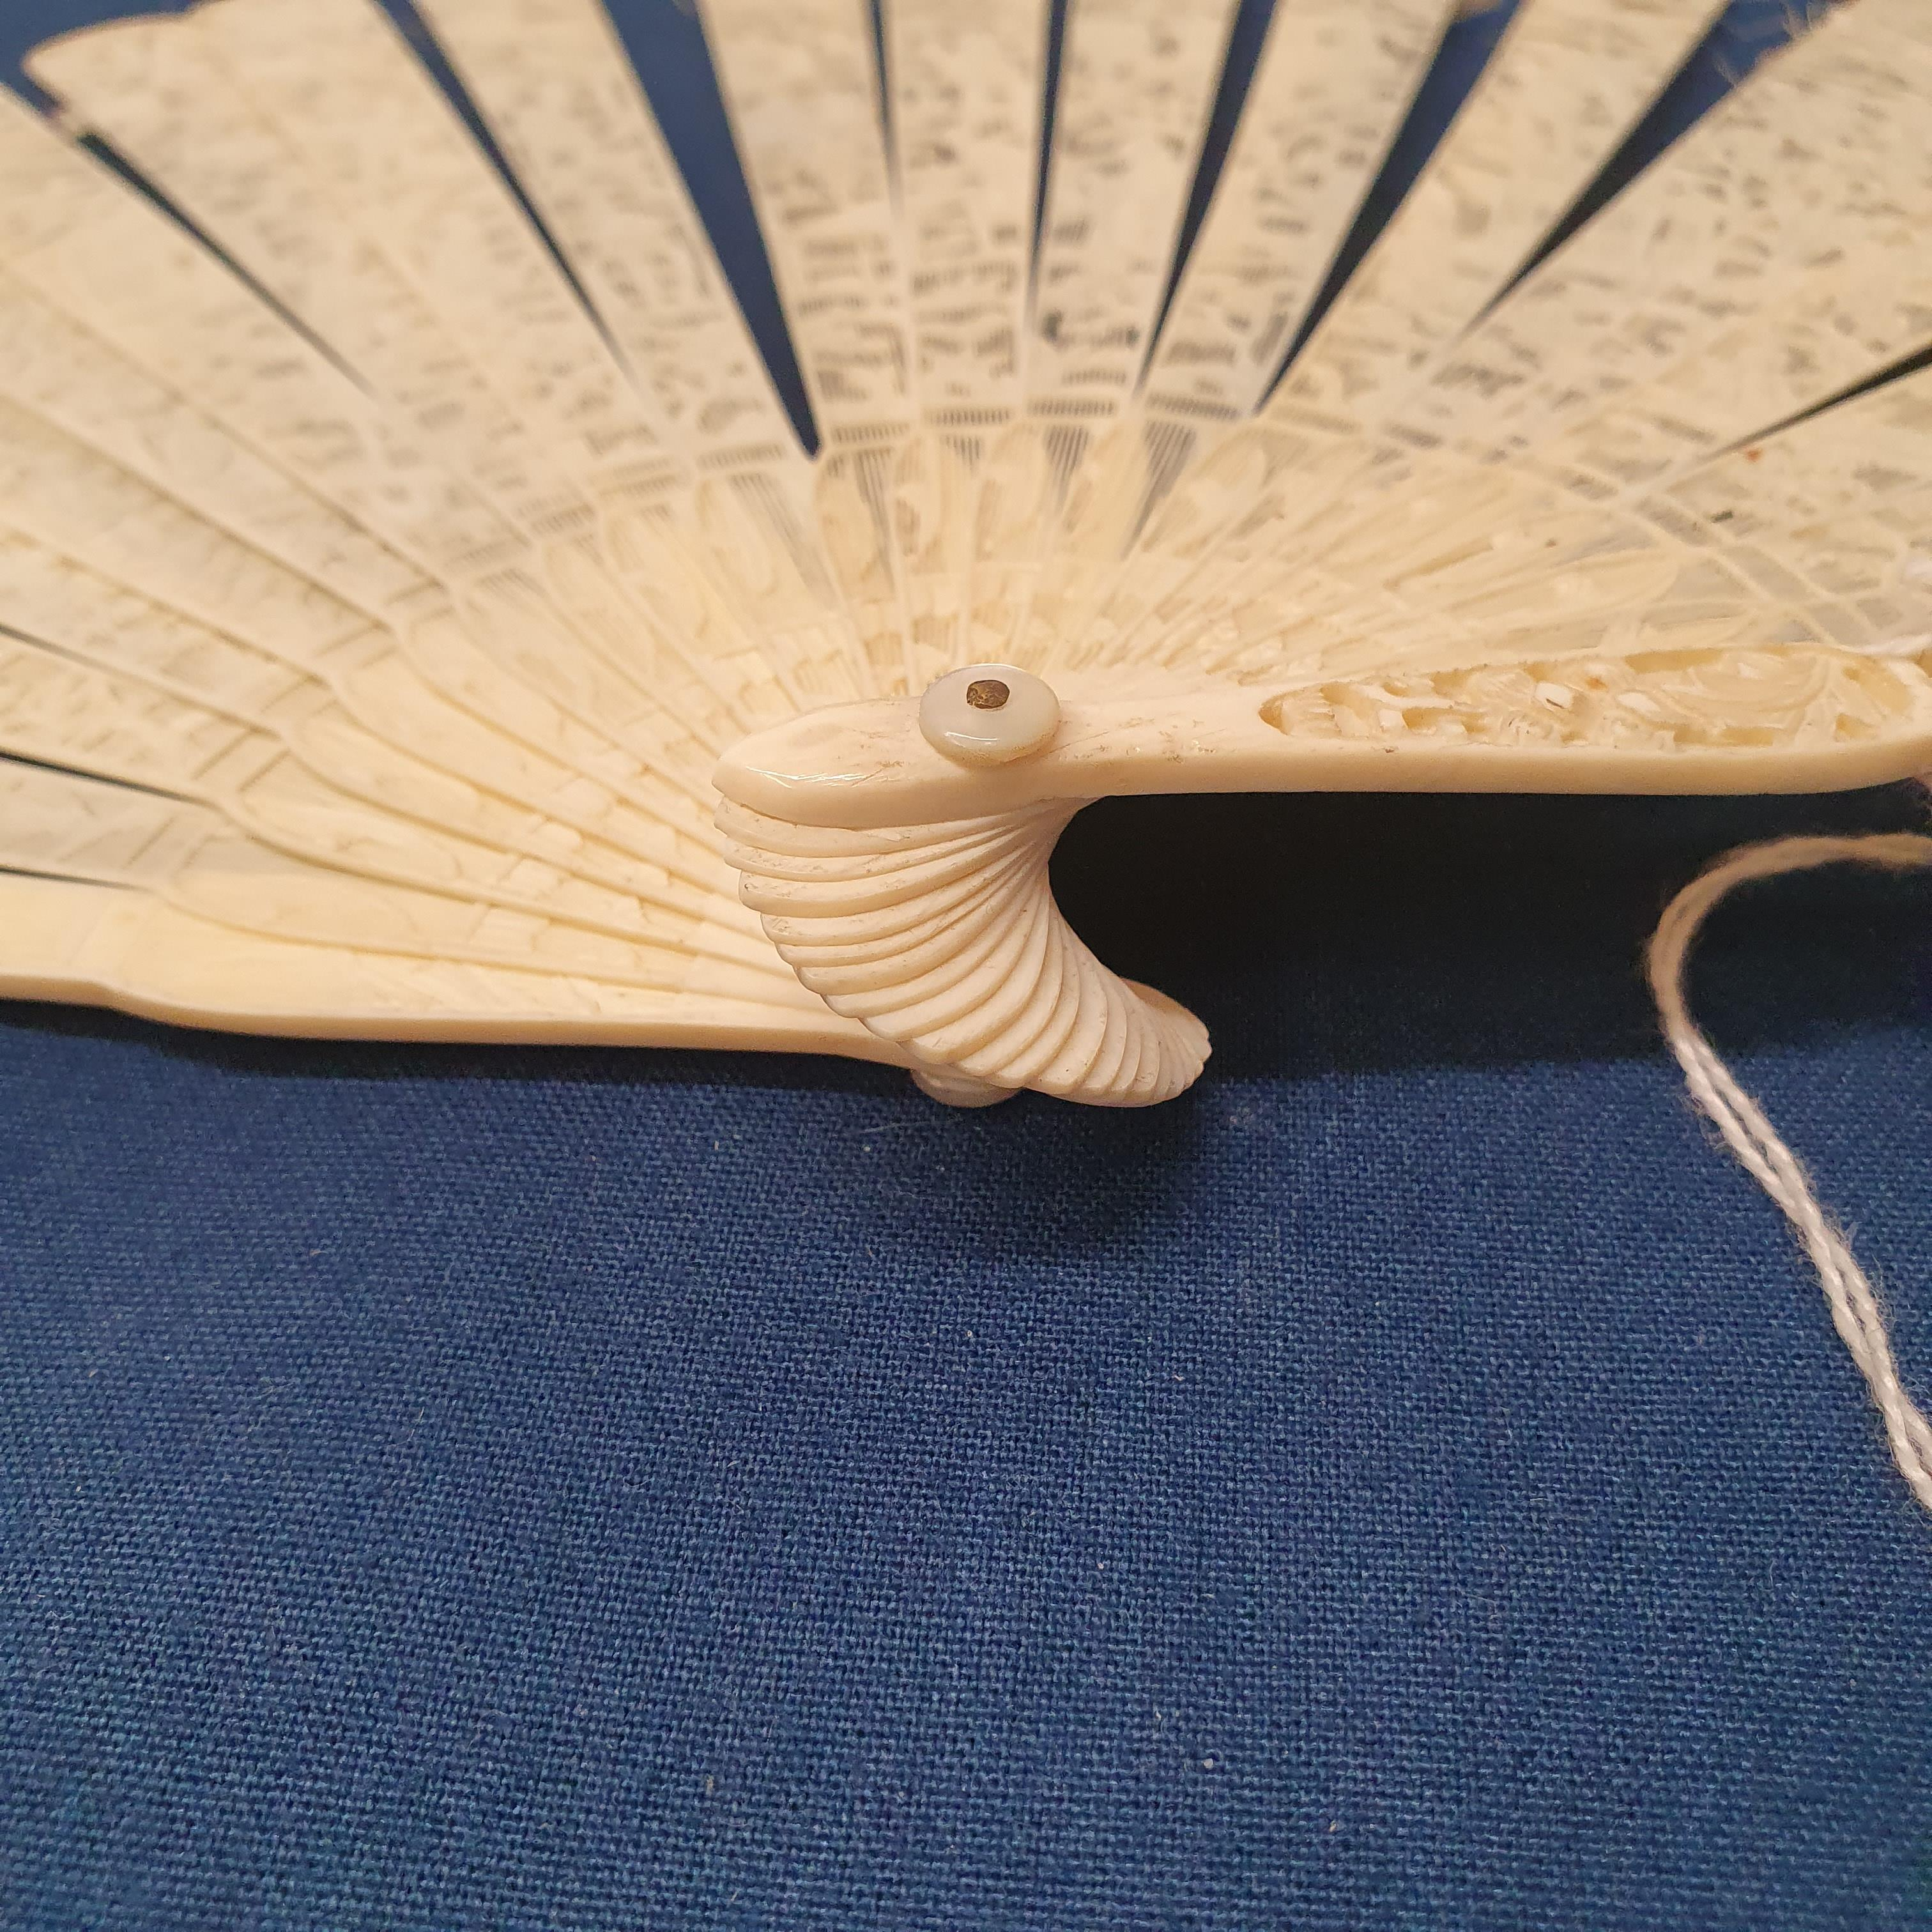 A Chinese ivory brisee fan, two others, and a similar fan with silk embroidered decoration, in a - Image 39 of 47